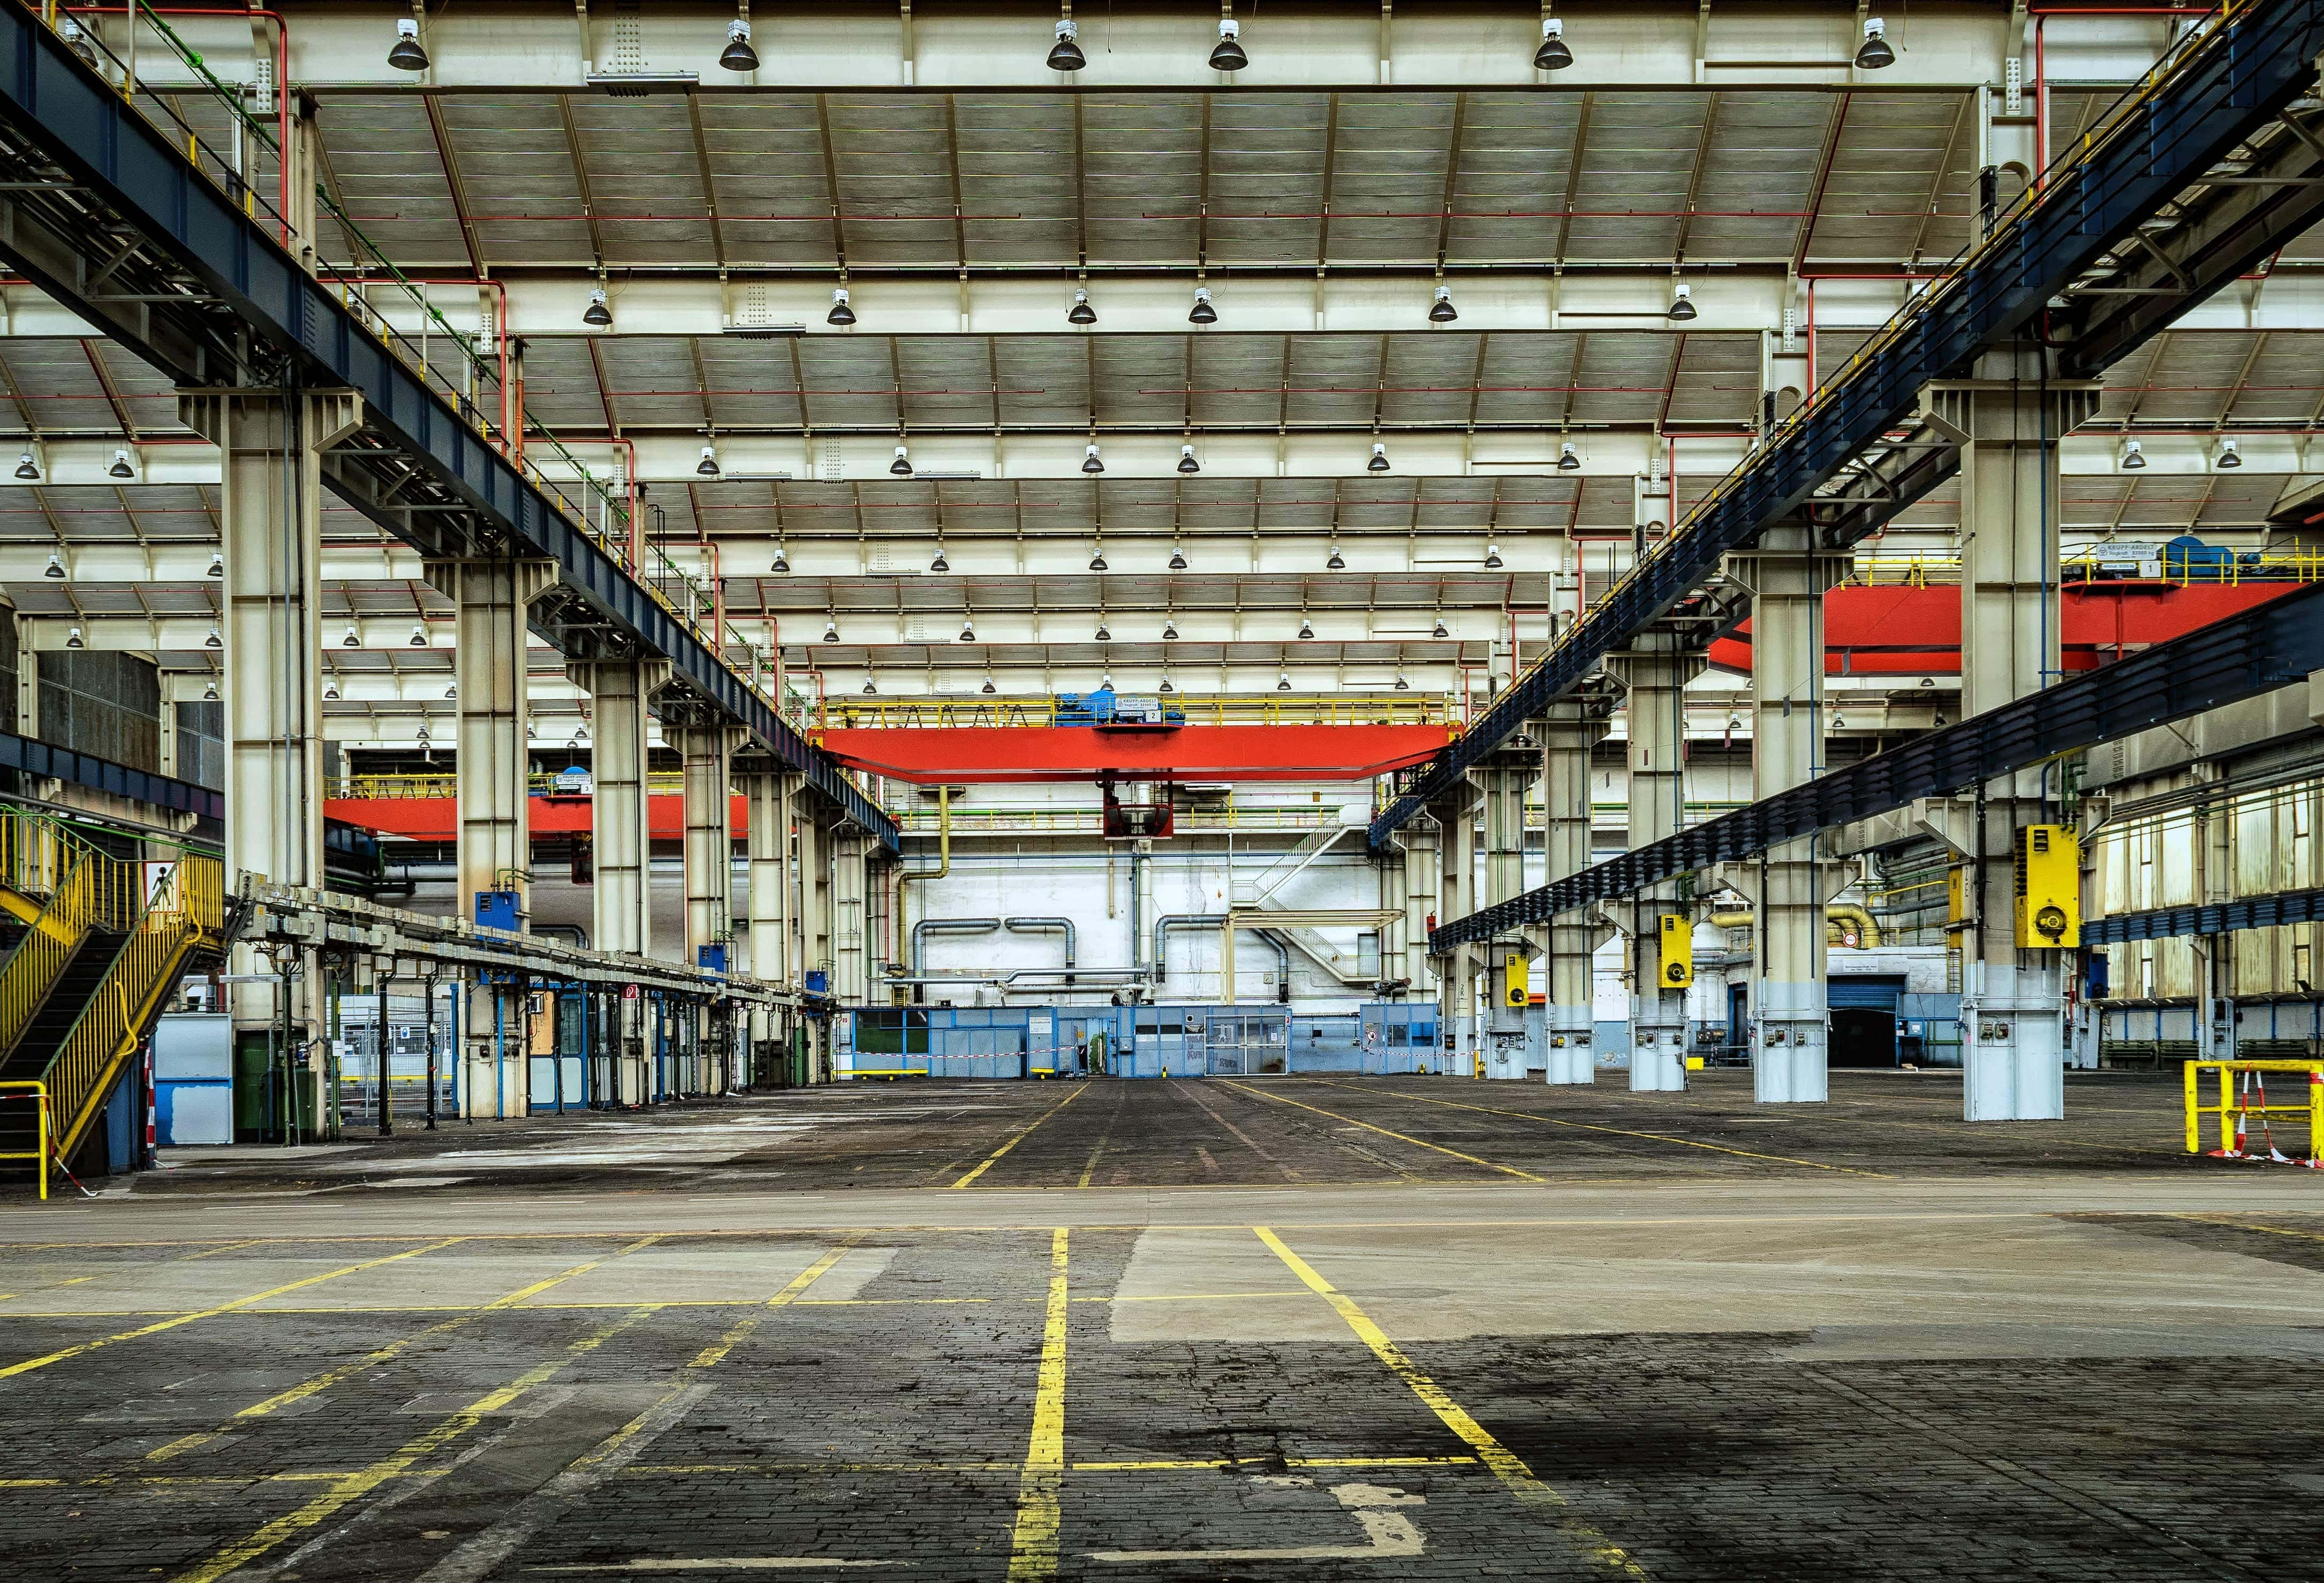 agv robots in warehouse